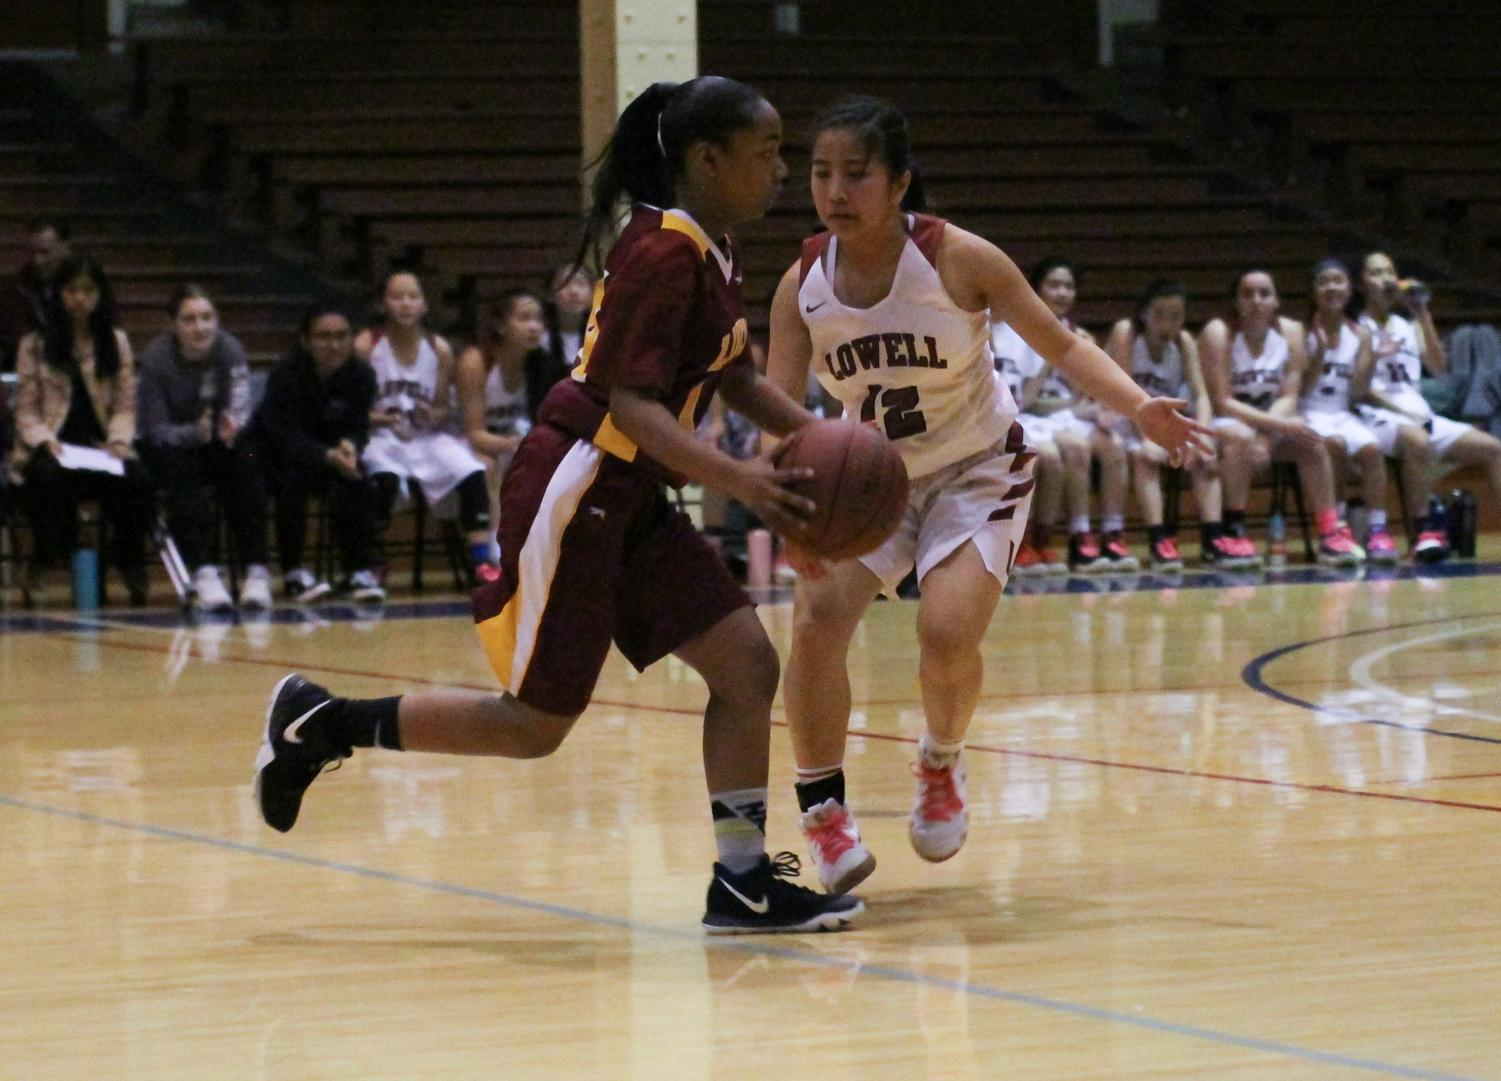 Sophomore guard Jaelyn Braganza blocks a Lincoln Mustang from advancing down the court during the annual AAA championship on Feb. 15 at Kezar Stadium.